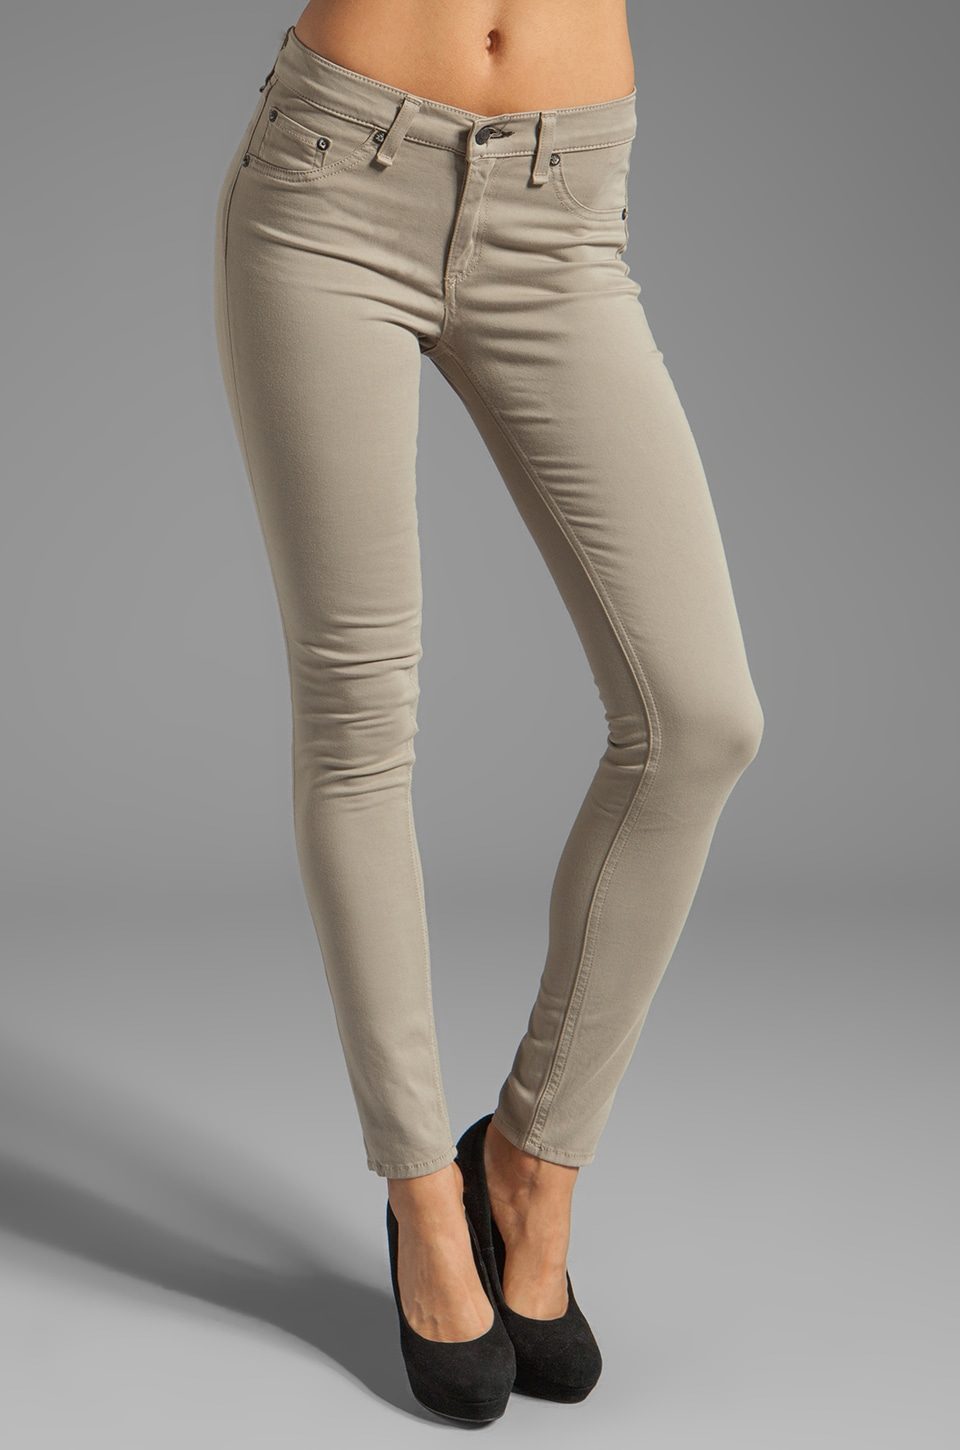 rag & bone/JEAN The Legging in Desert Khaki